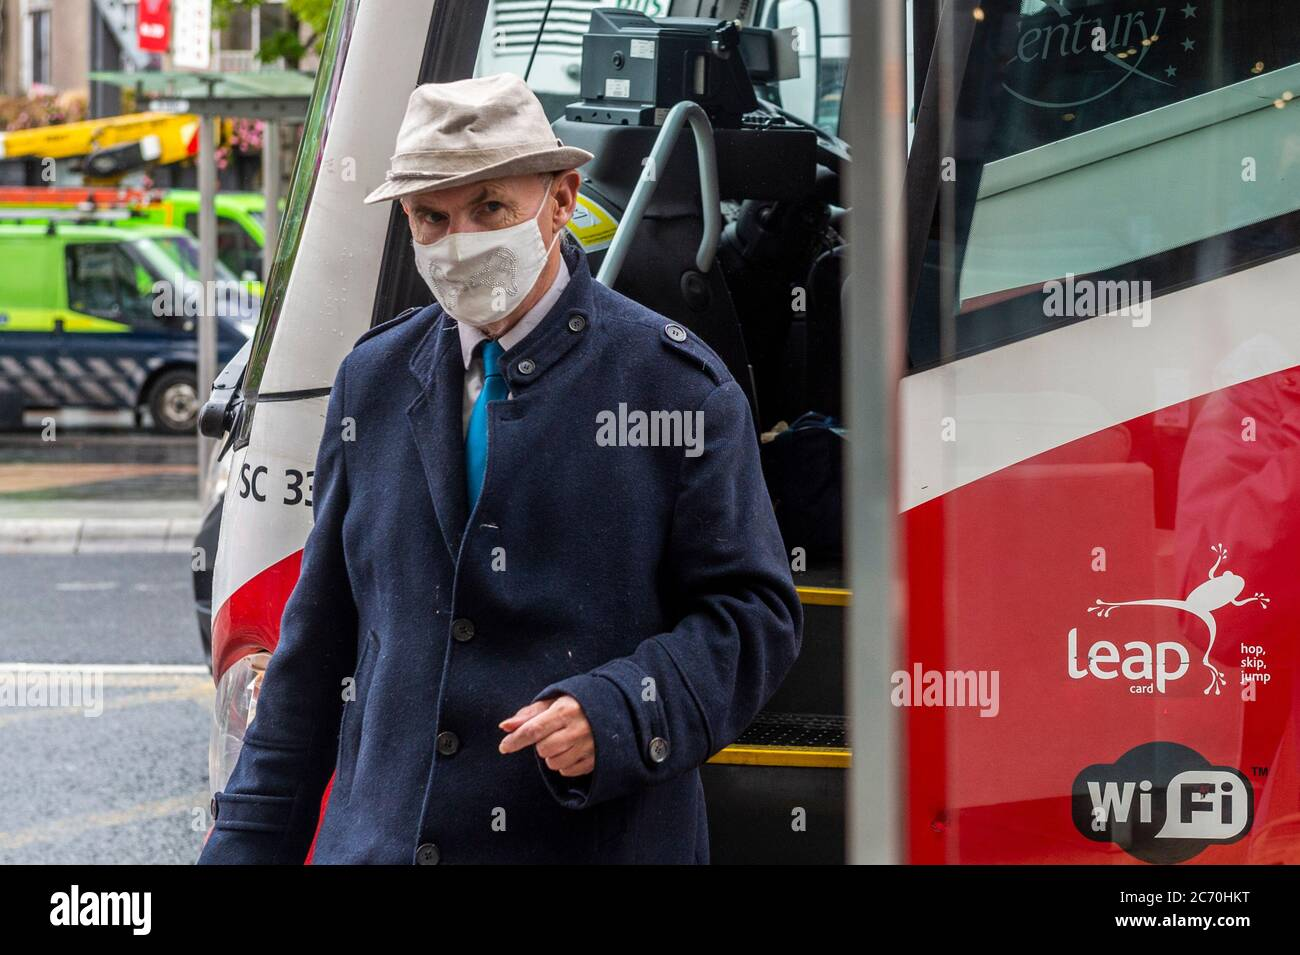 cork-ireland-13th-july-2020-the-irish-government-made-it-mandatory-for-users-of-public-transport-to-wear-face-masks-from-this-morning-most-passengers-and-drivers-were-seen-to-be-wearing-face-masks-although-some-passengers-travelled-without-masks-the-penalty-for-non-compliance-is-a-2500-fine-andor-6-months-in-prison-credit-ag-newsalamy-live-news-2C70HKT.jpg